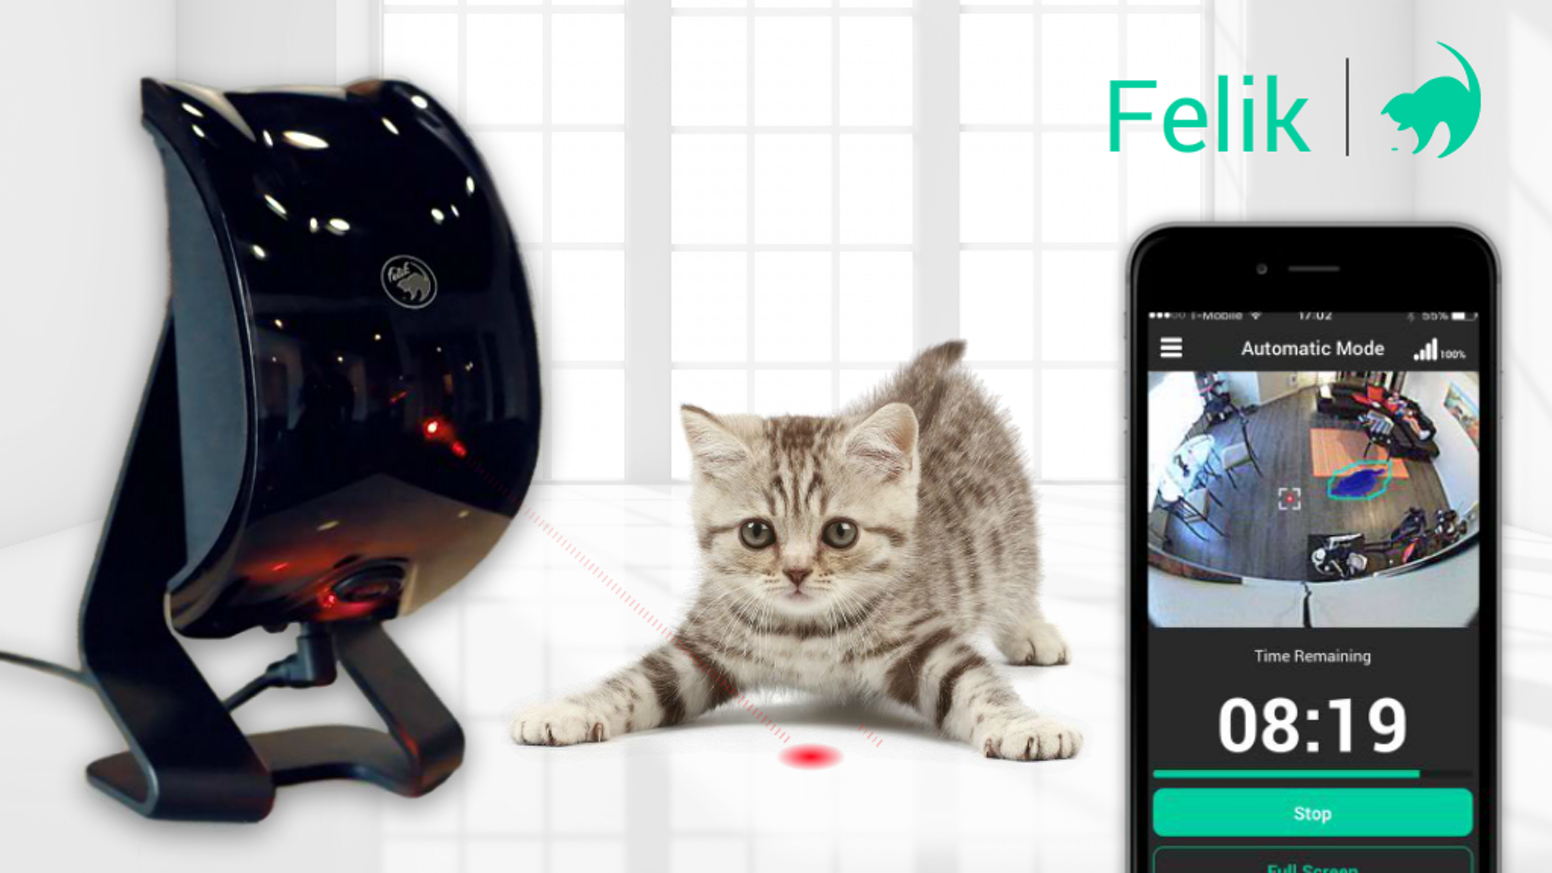 Powered by Artificial Intelligence. Camera tracks pets & Felik reacts to their motions automatically. Zero human interaction required!